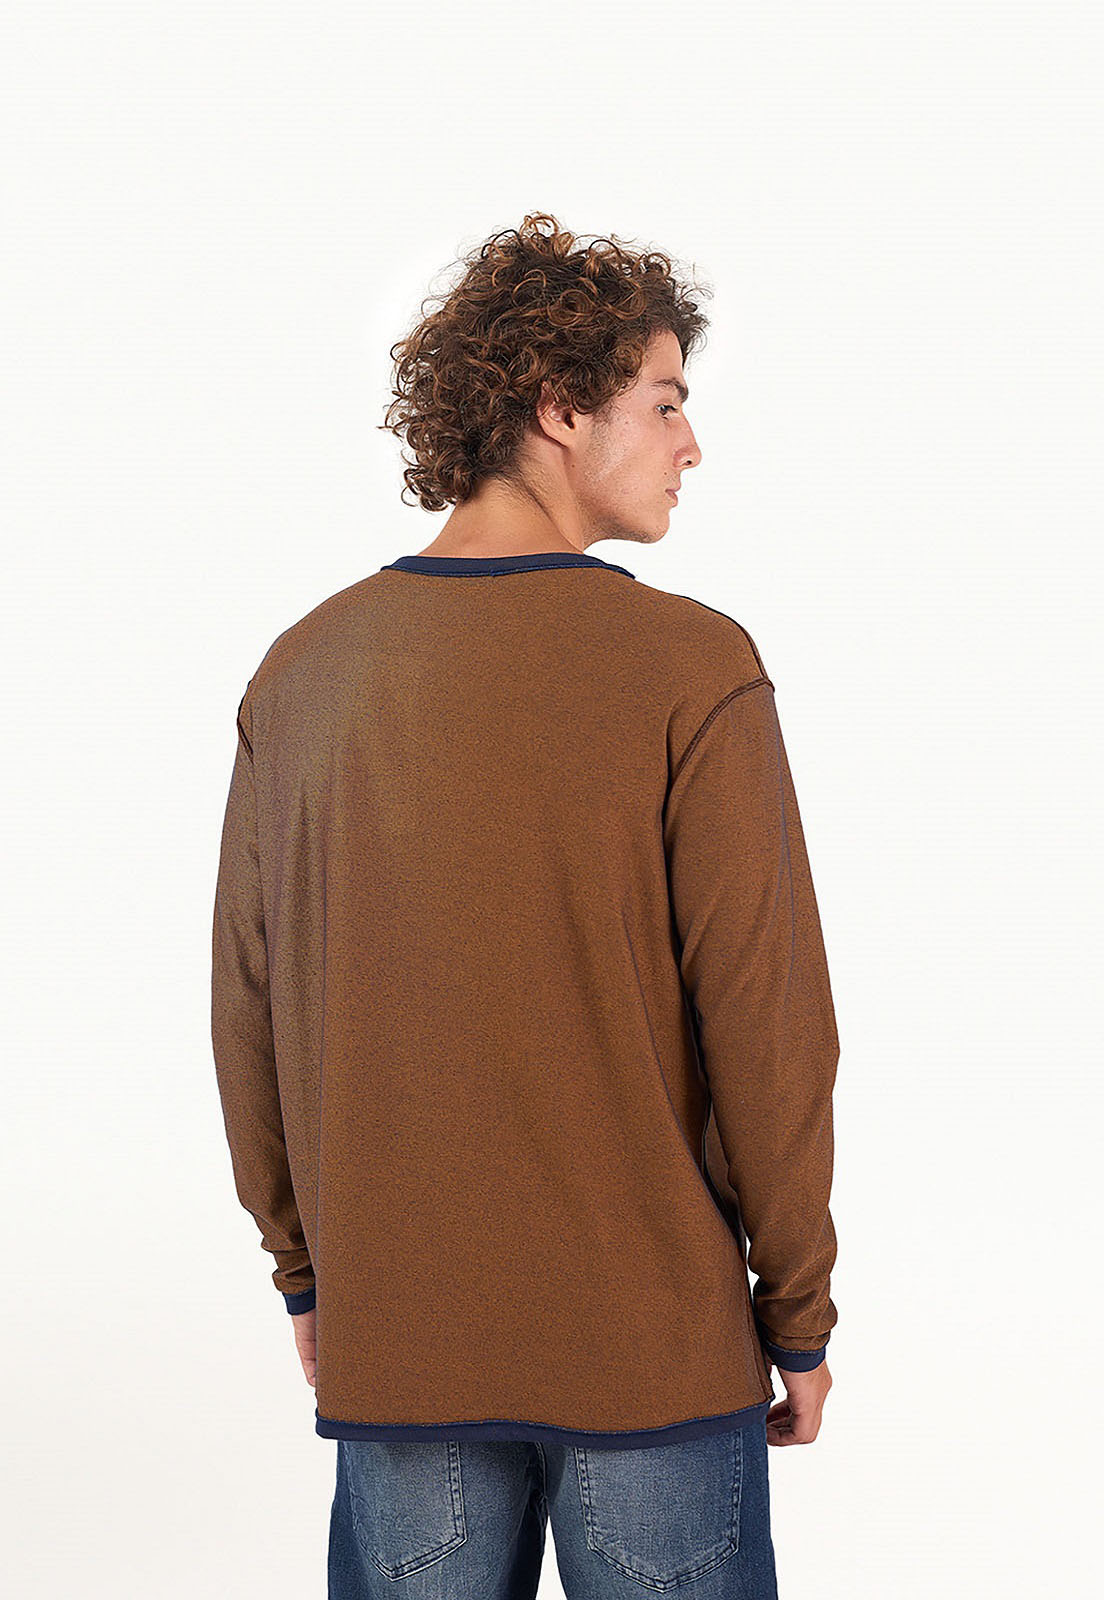 Blusa Double Camel melty